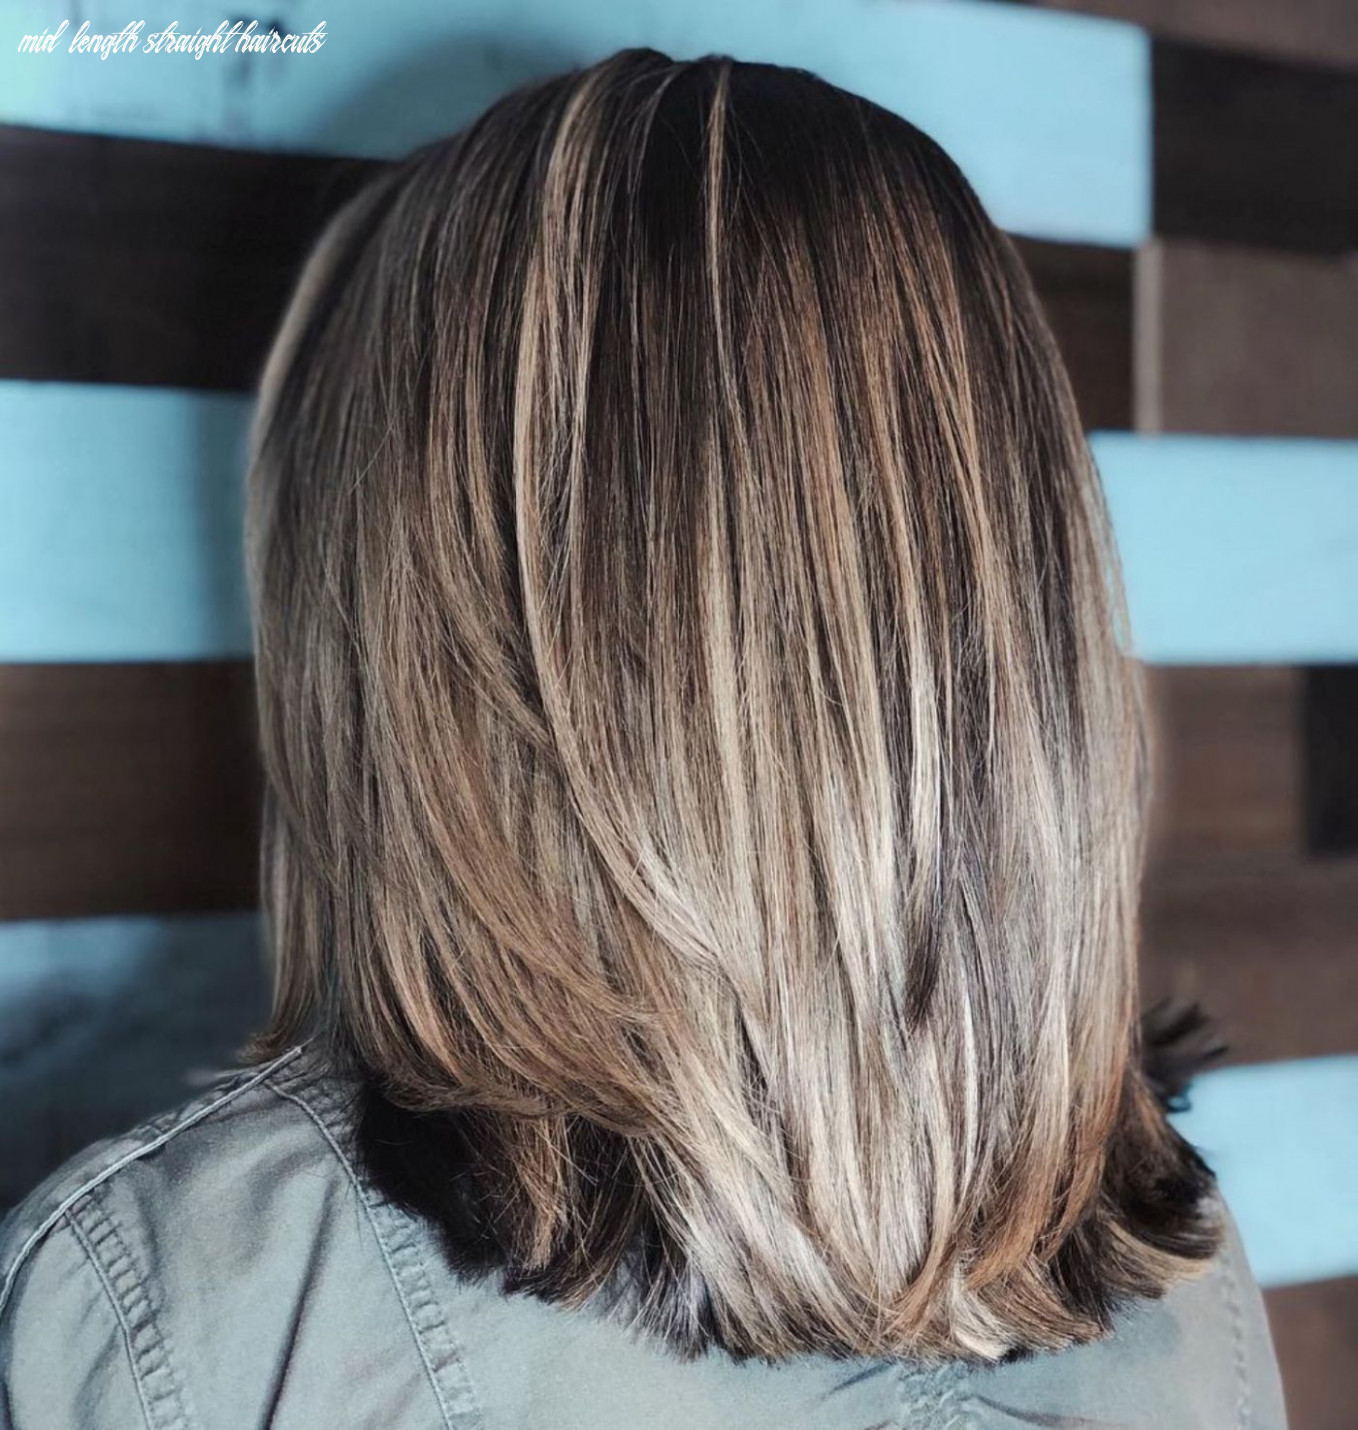 Pin on hair styles mid length straight haircuts